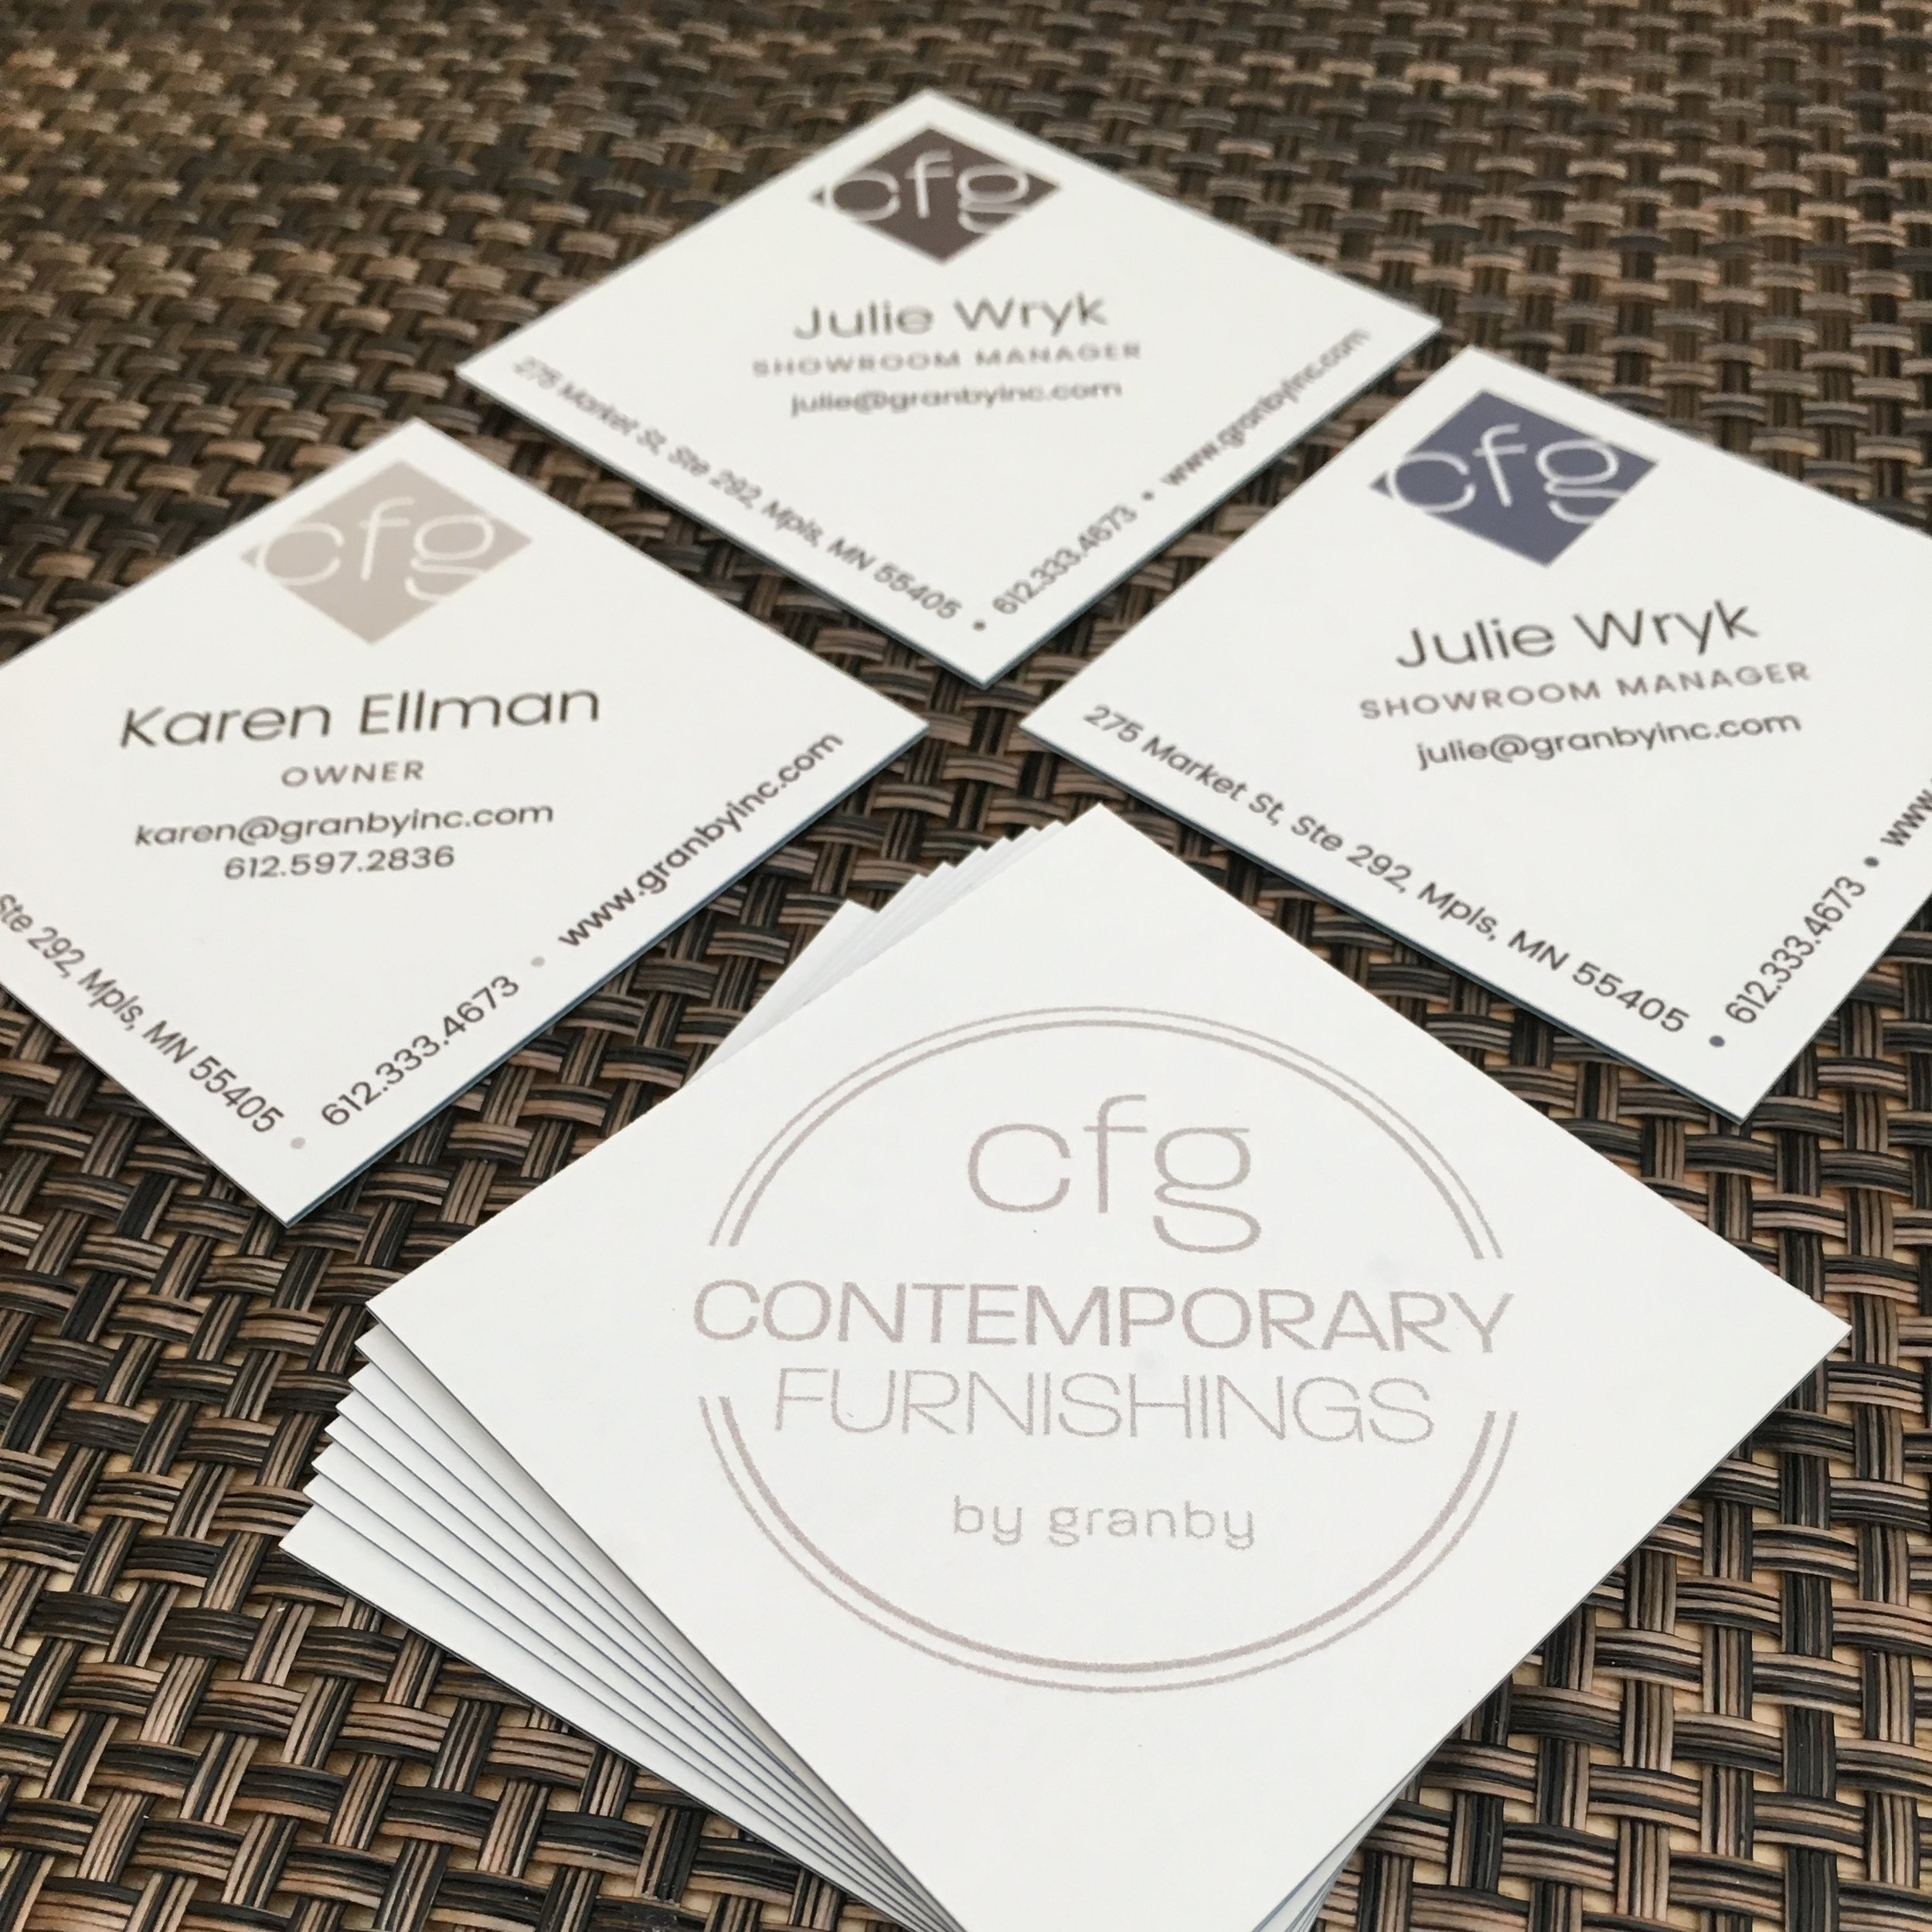 Designed luxury, extra-thick diamond business cards with a variety of logo colors.